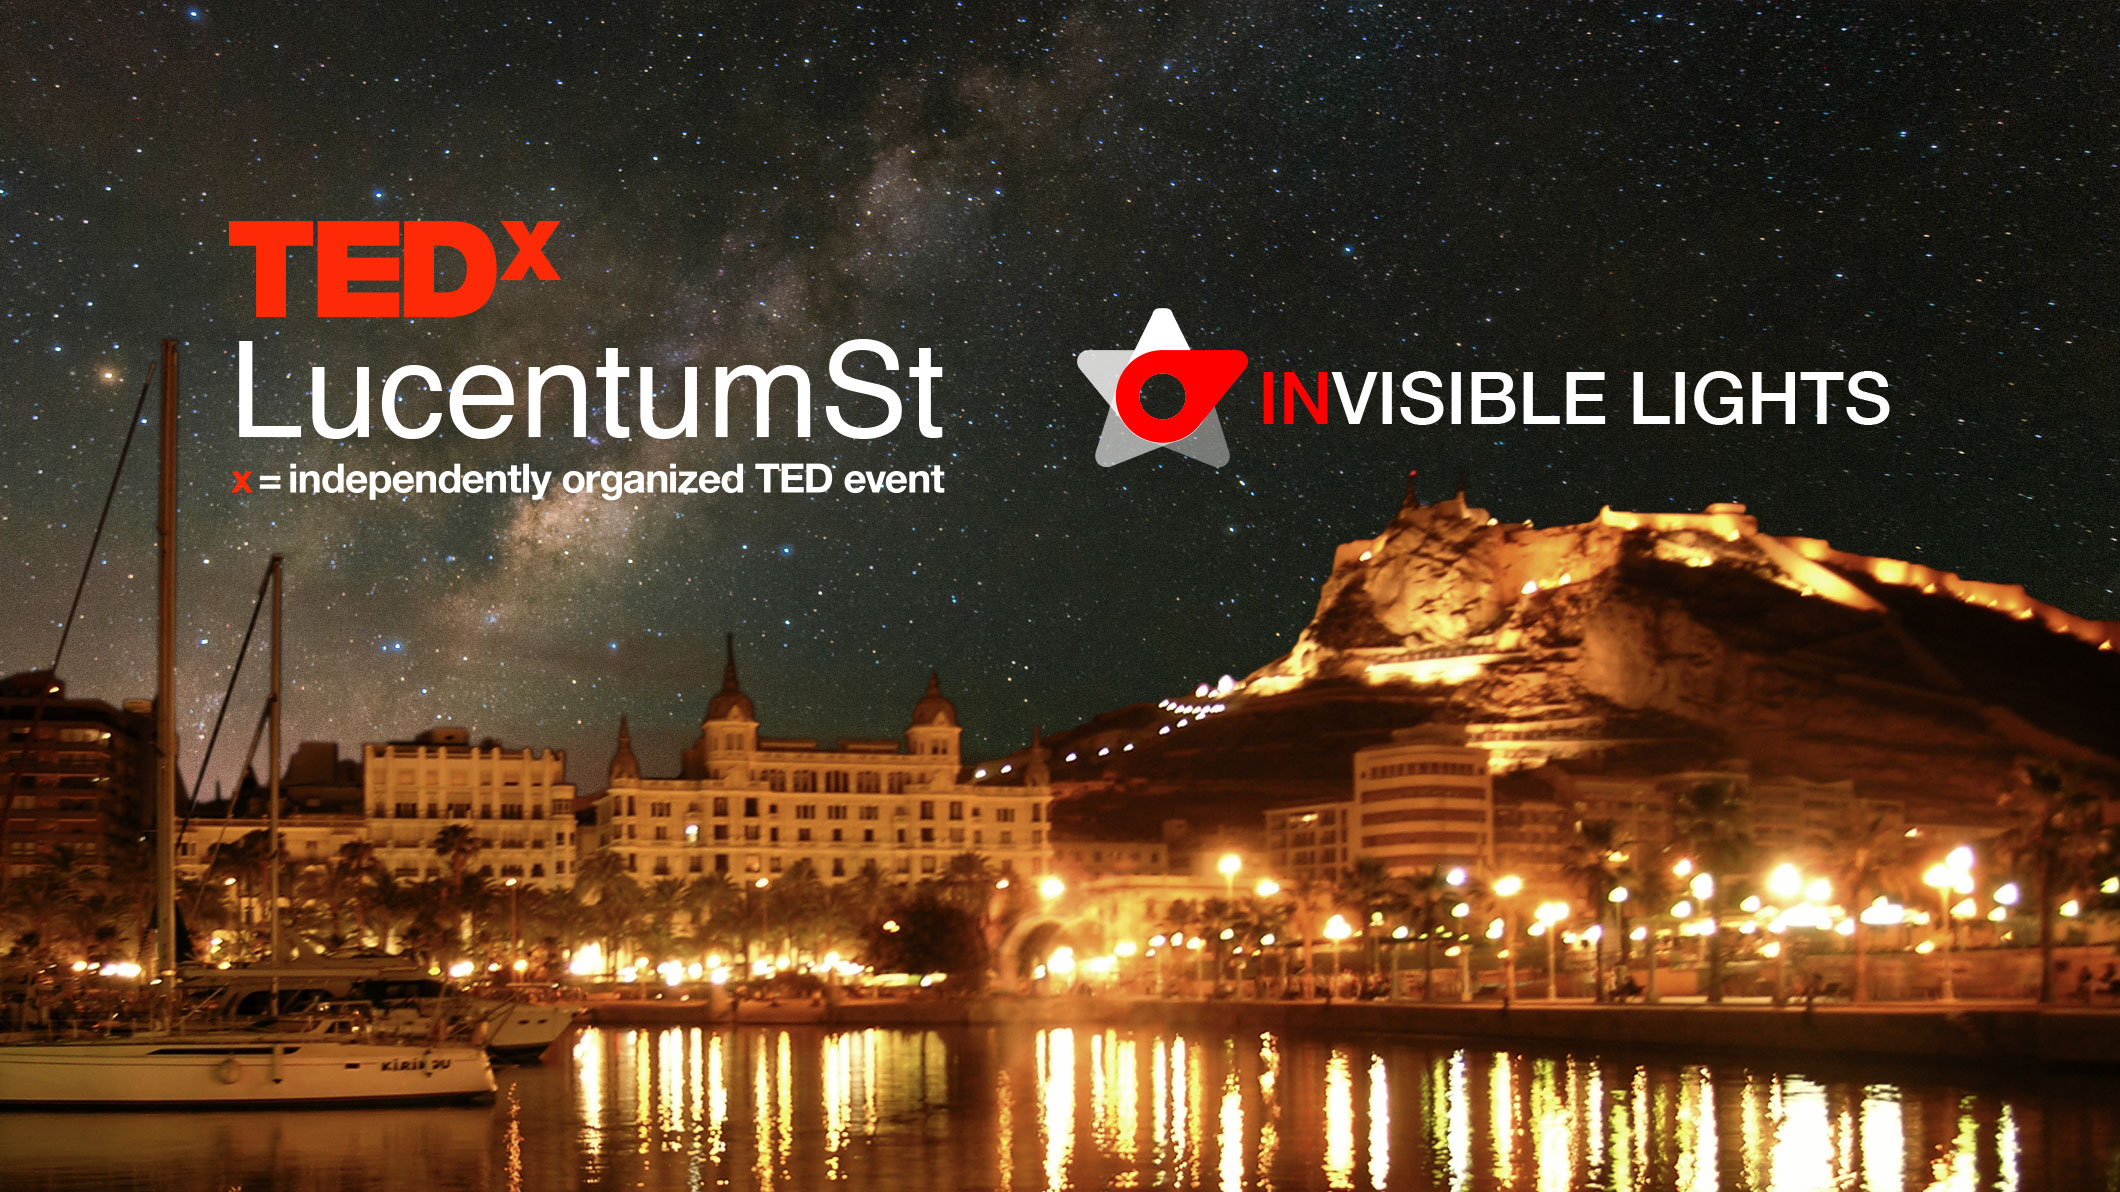 TEDxLucentumSt